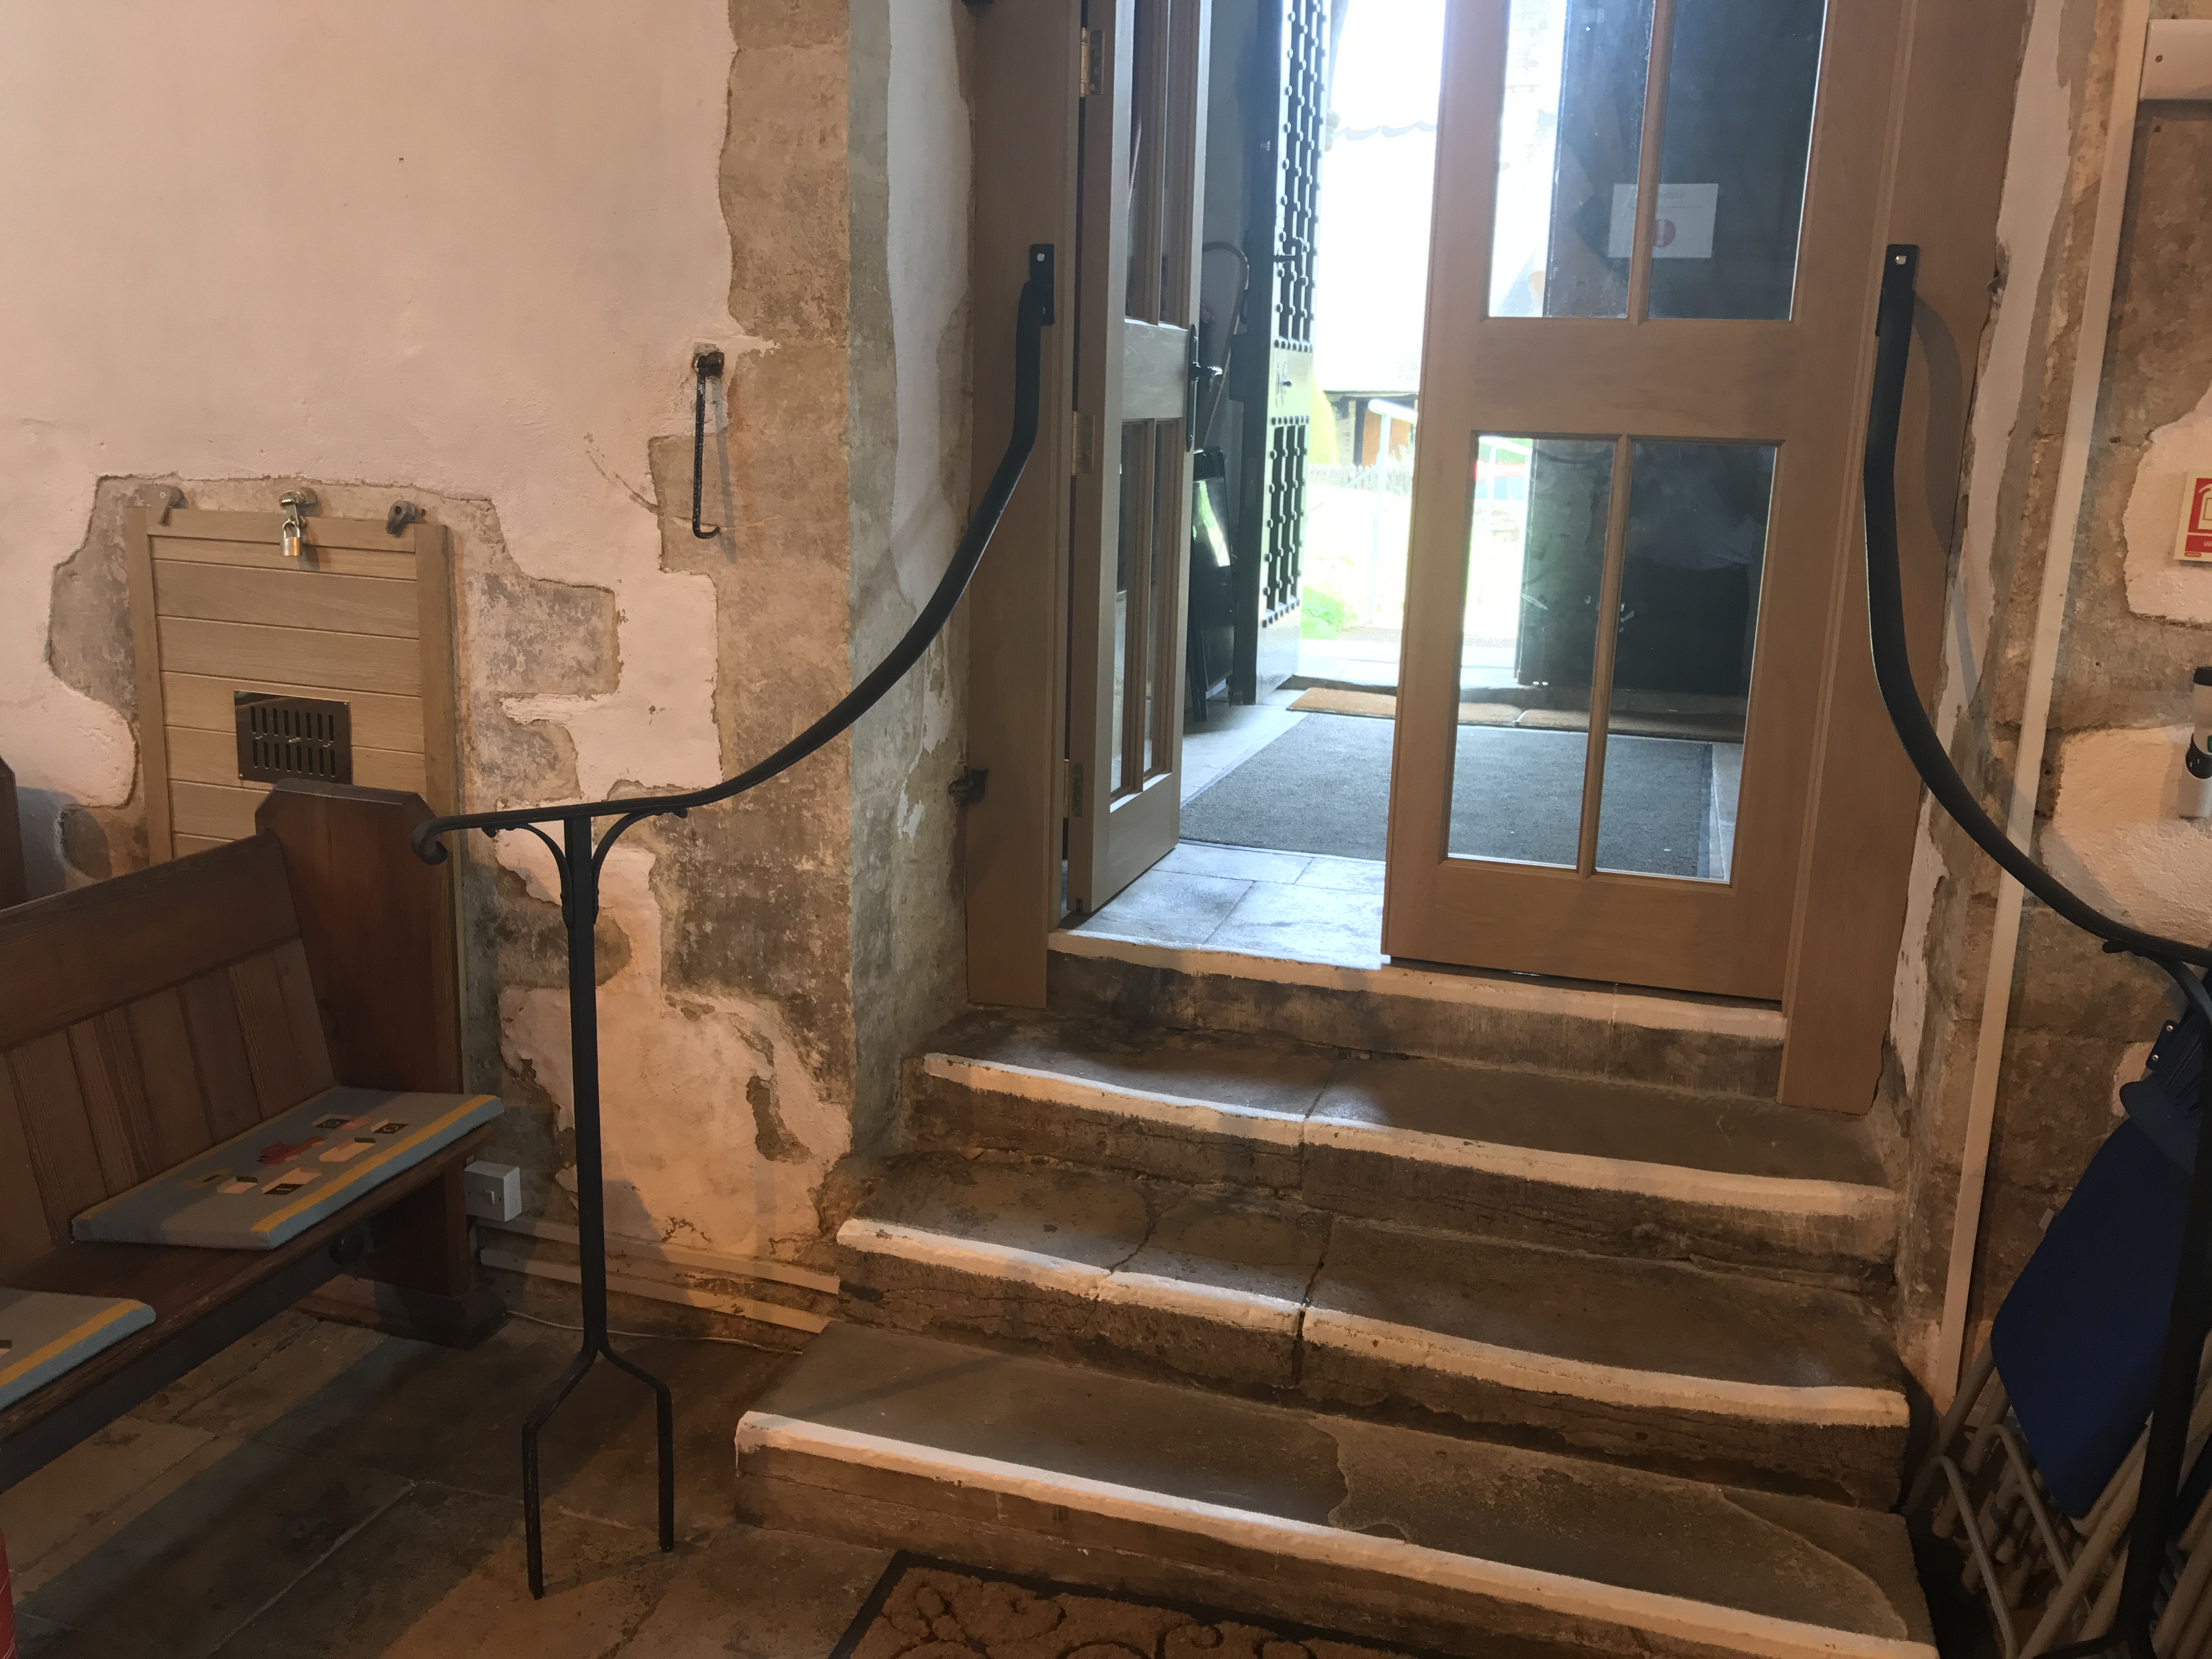 The rails installed by Millhouse Construction of Ducklington